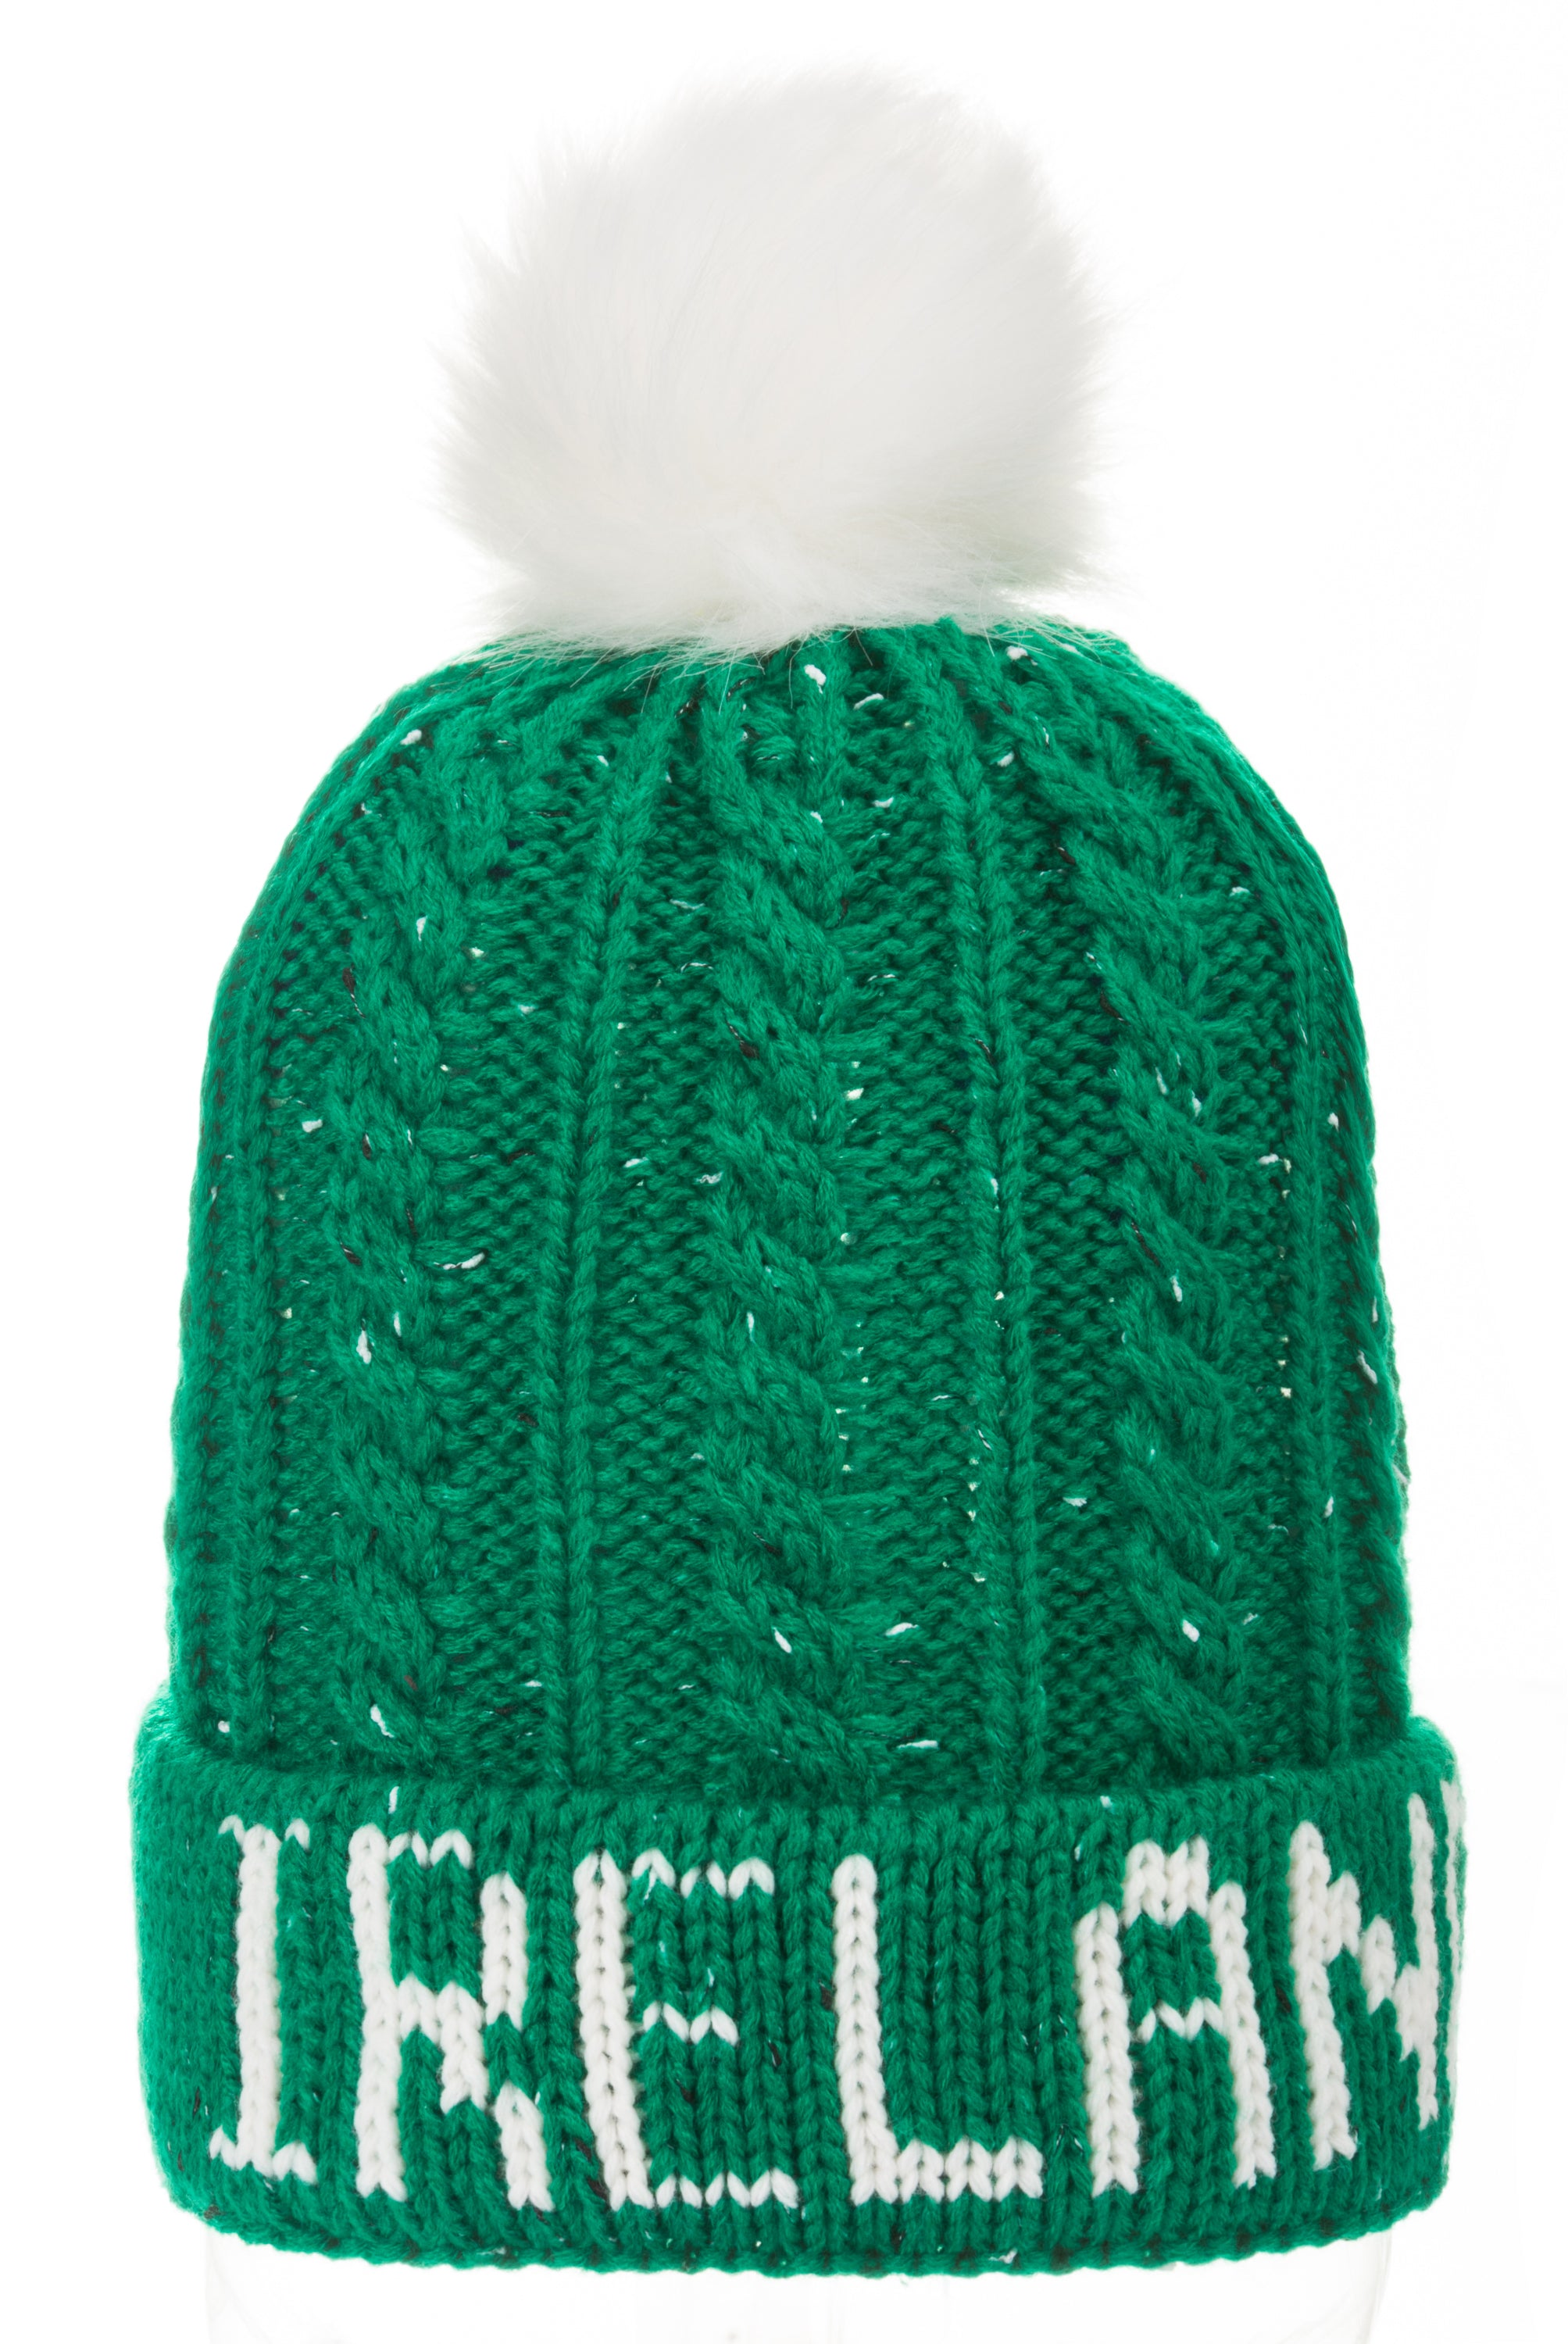 Hats, Ireland logo, green with white logo and pom pom